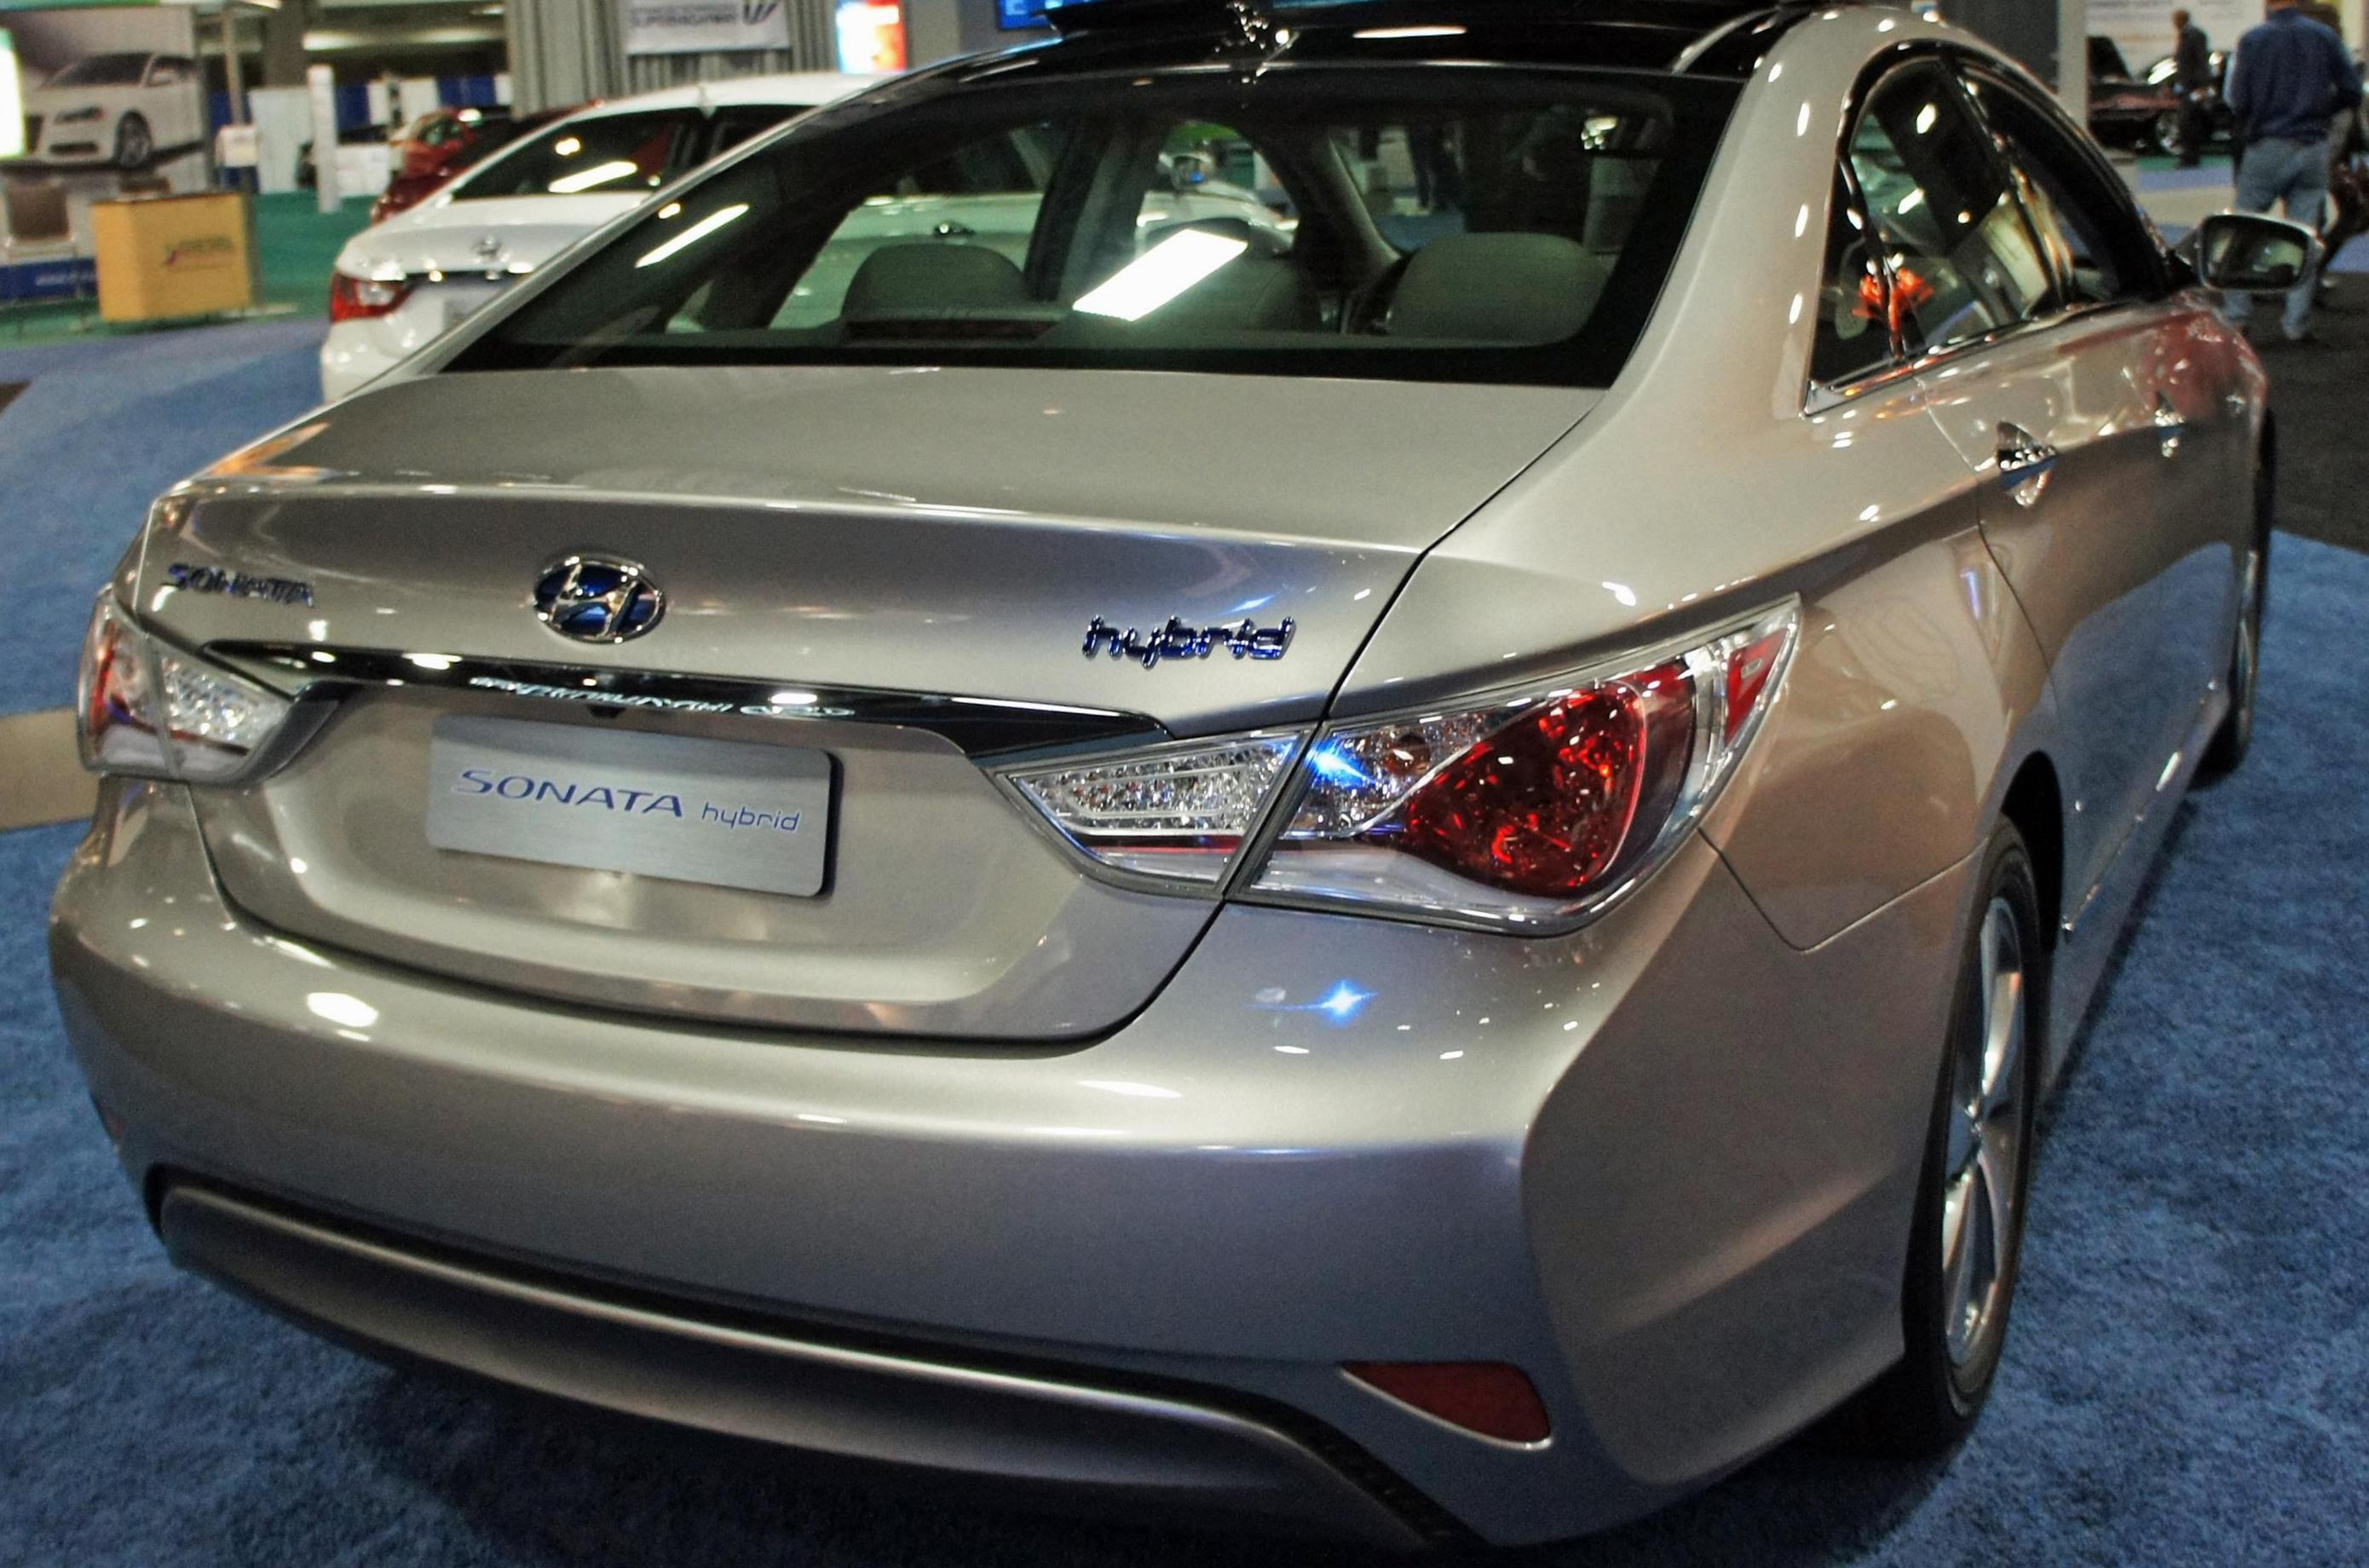 hyundai sonata hybrid photos and specs photo sonata hybrid hyundai reviews and 23 perfect. Black Bedroom Furniture Sets. Home Design Ideas